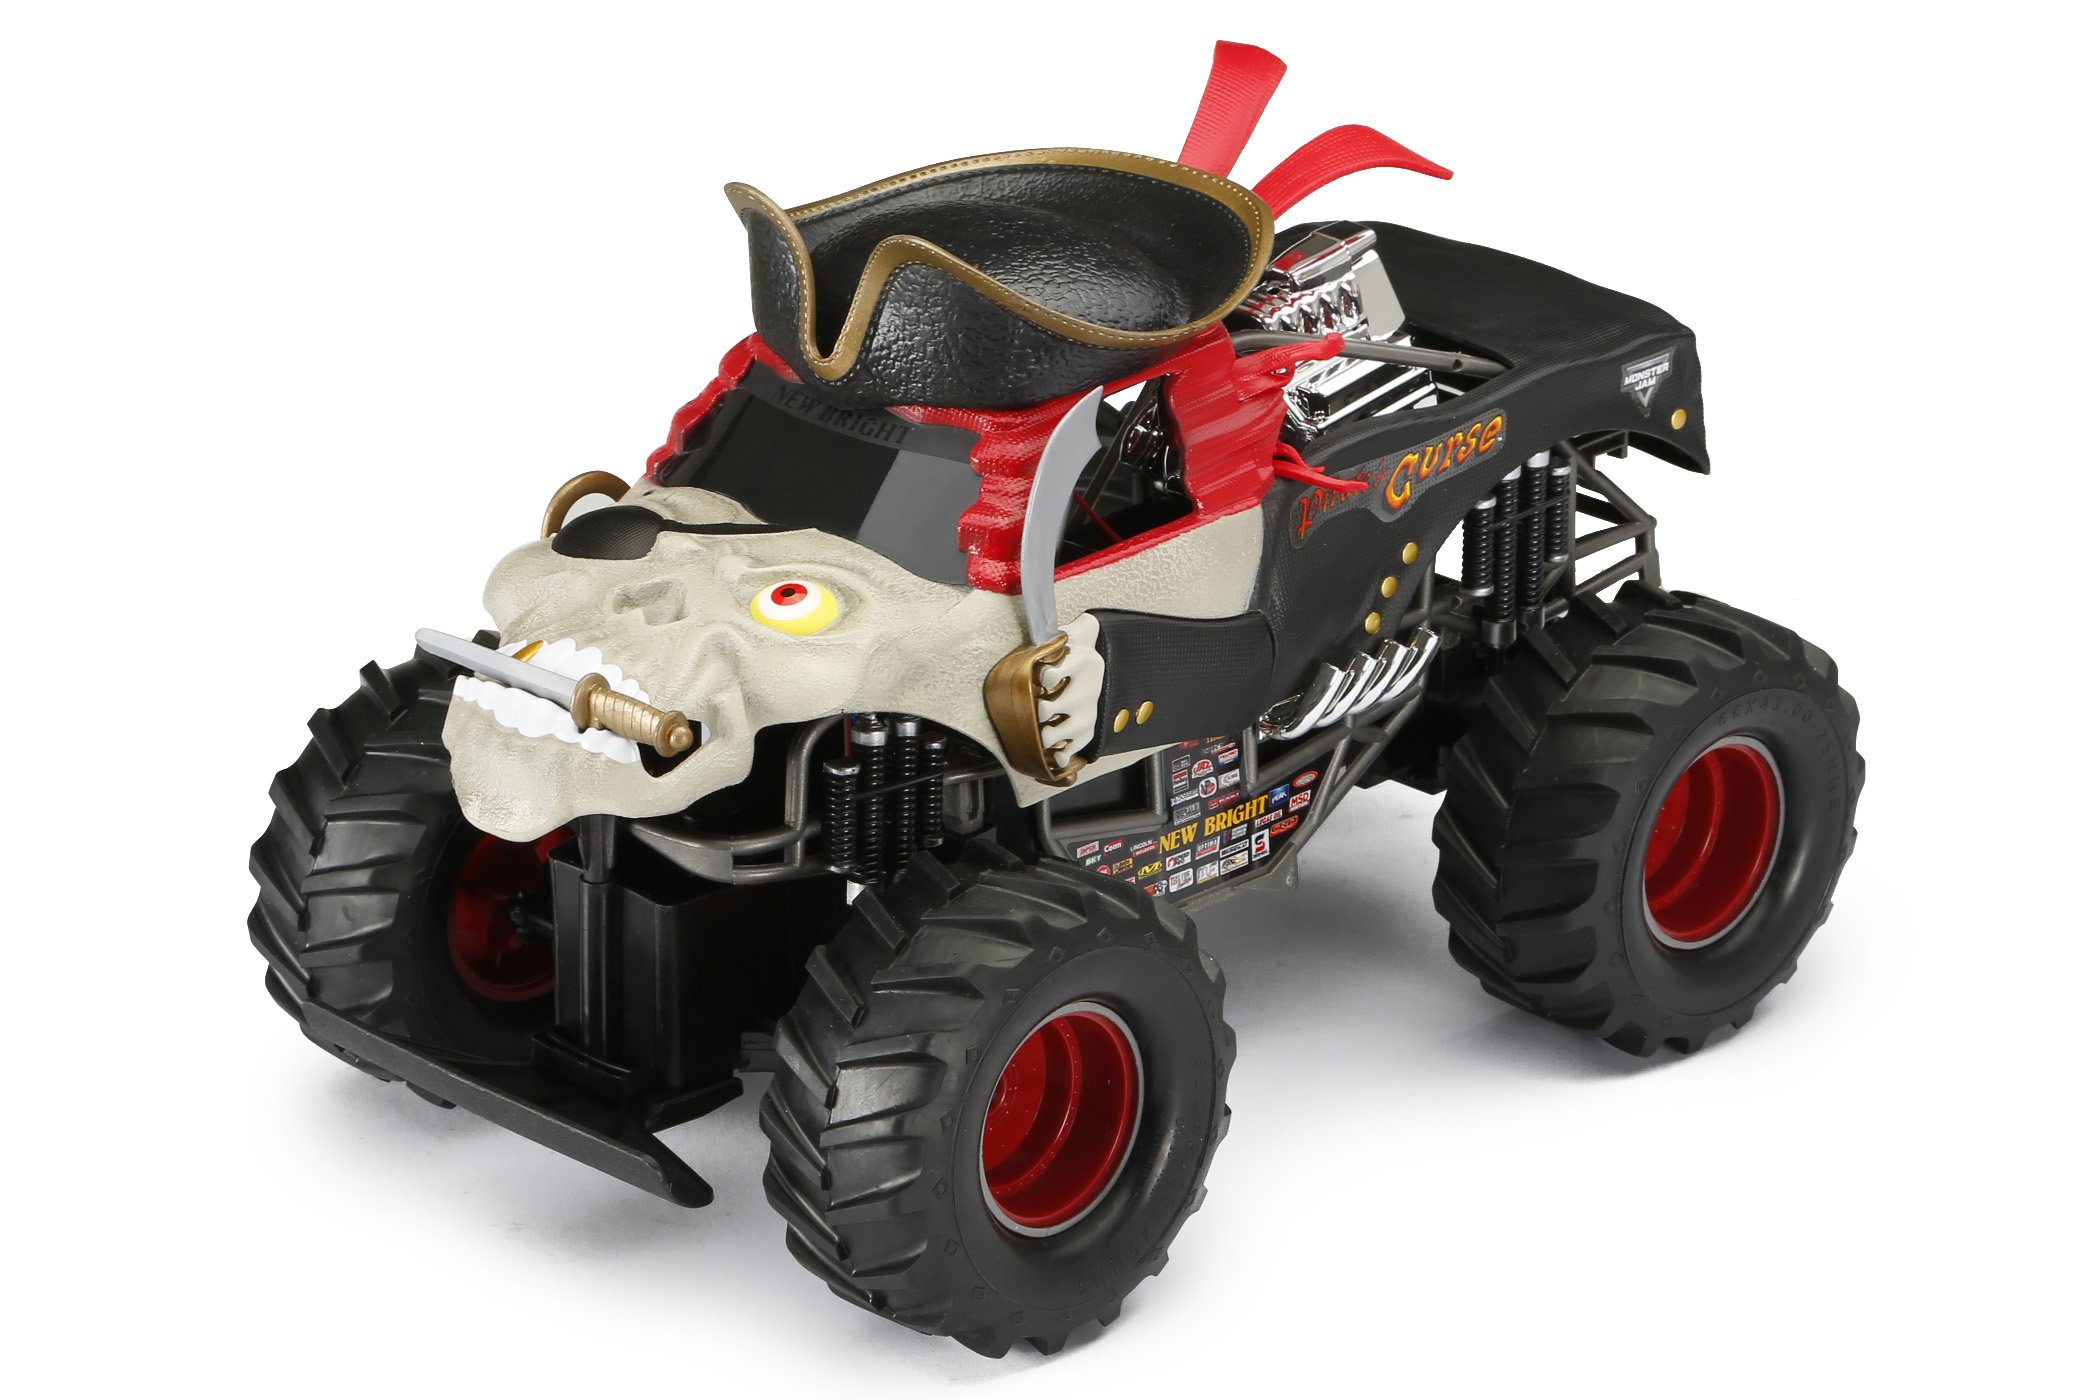 New Bright 1:15 Scale Radio Control Monster Jam Truck by New Bright Industrial Co., Ltd.